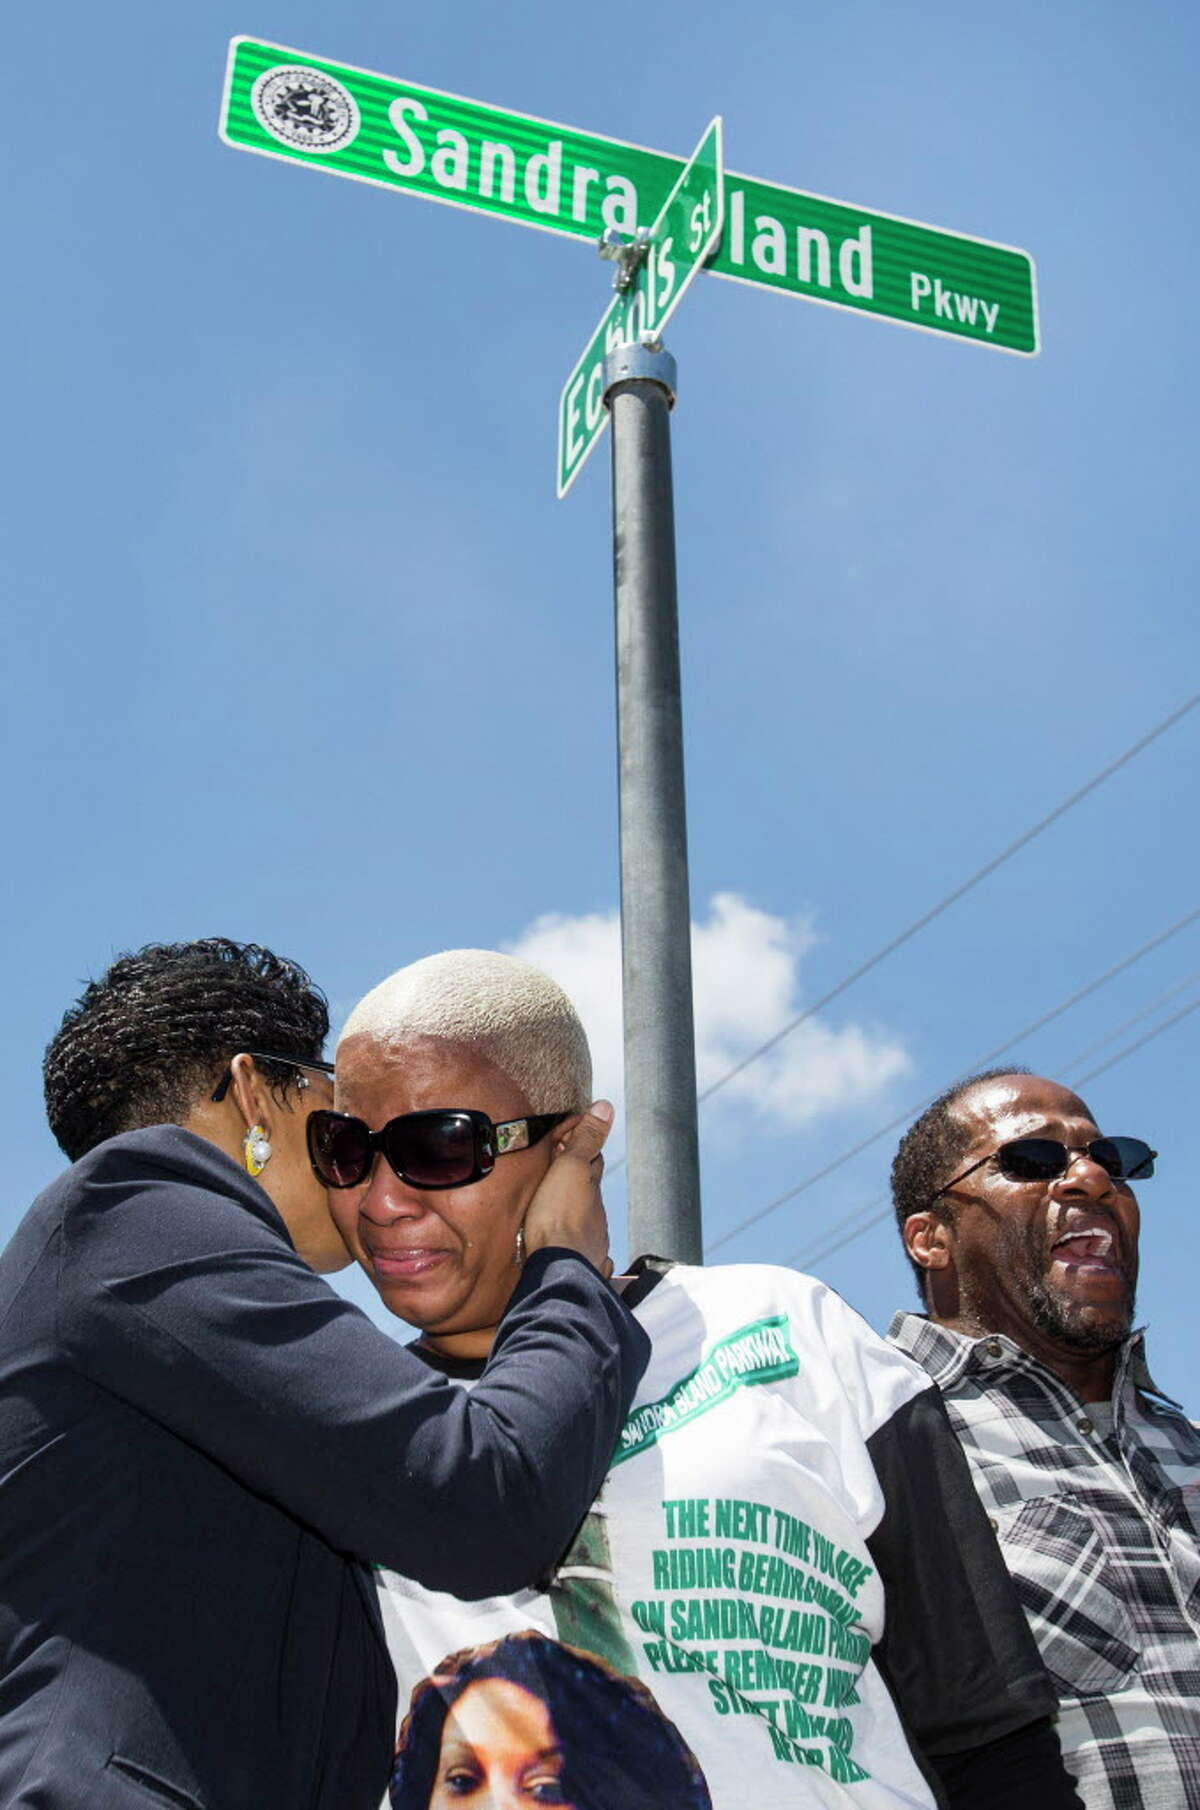 Geneva Reed-Veal, left, mother of Sandra Bland, embraces her daughter, Shante Needham during a ceremony renaming University Boulevard to Sandra Bland Parkway on Friday, April 15, 2016, in Prairie View. The street was renamed near the location where Bland, who died in custody at the Waller County Jail, was arrested.